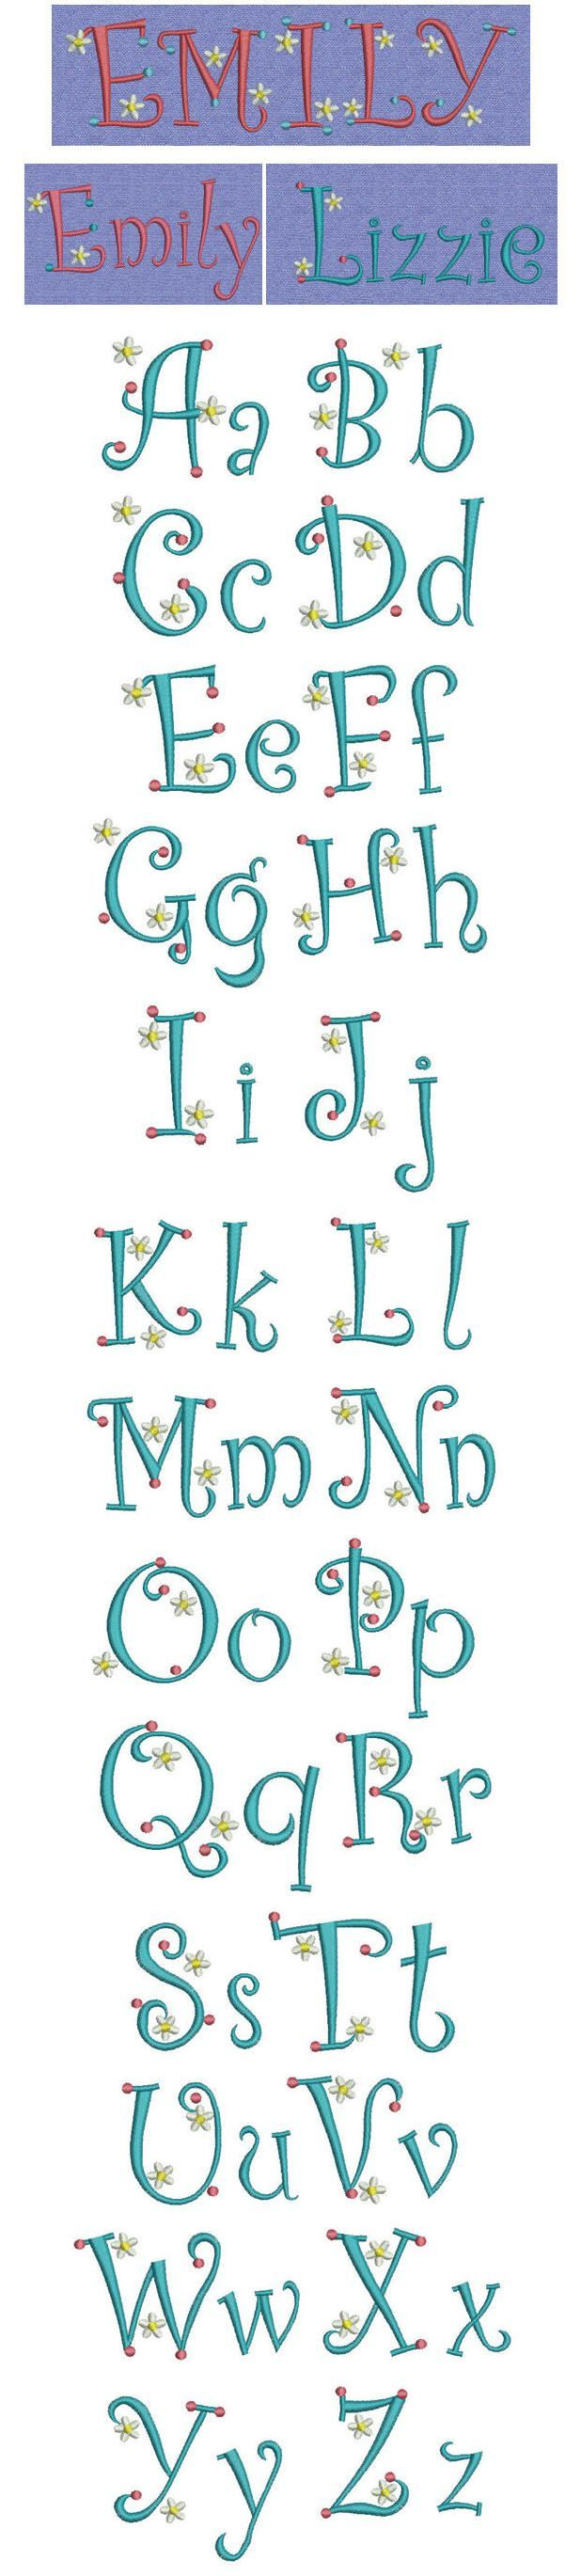 Embroidery   Free Machine Embroidery designs   Dots Daisies alphabet